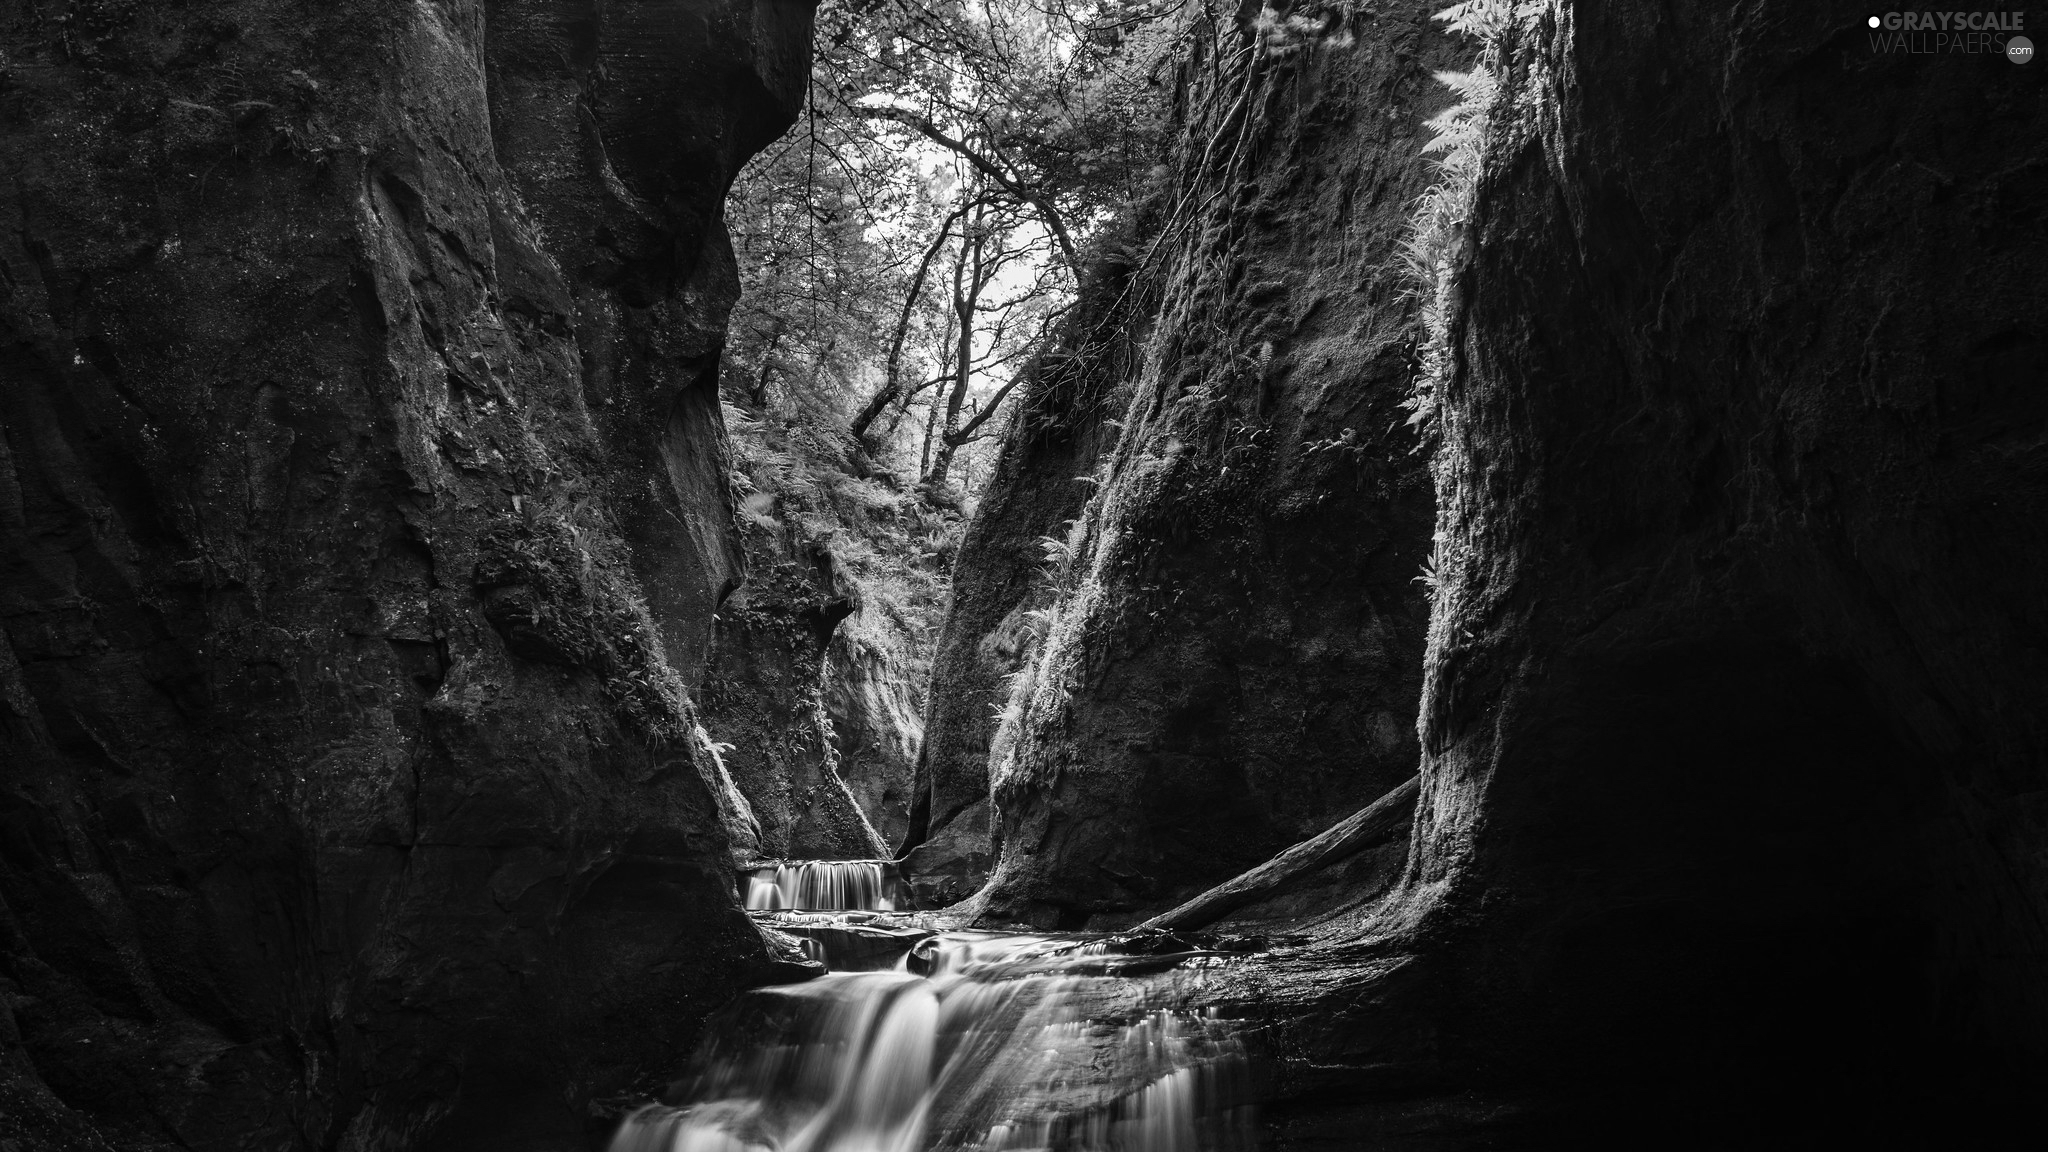 Stirling, Scotland, Finnich Glen, Carnock Burn River, Scotland